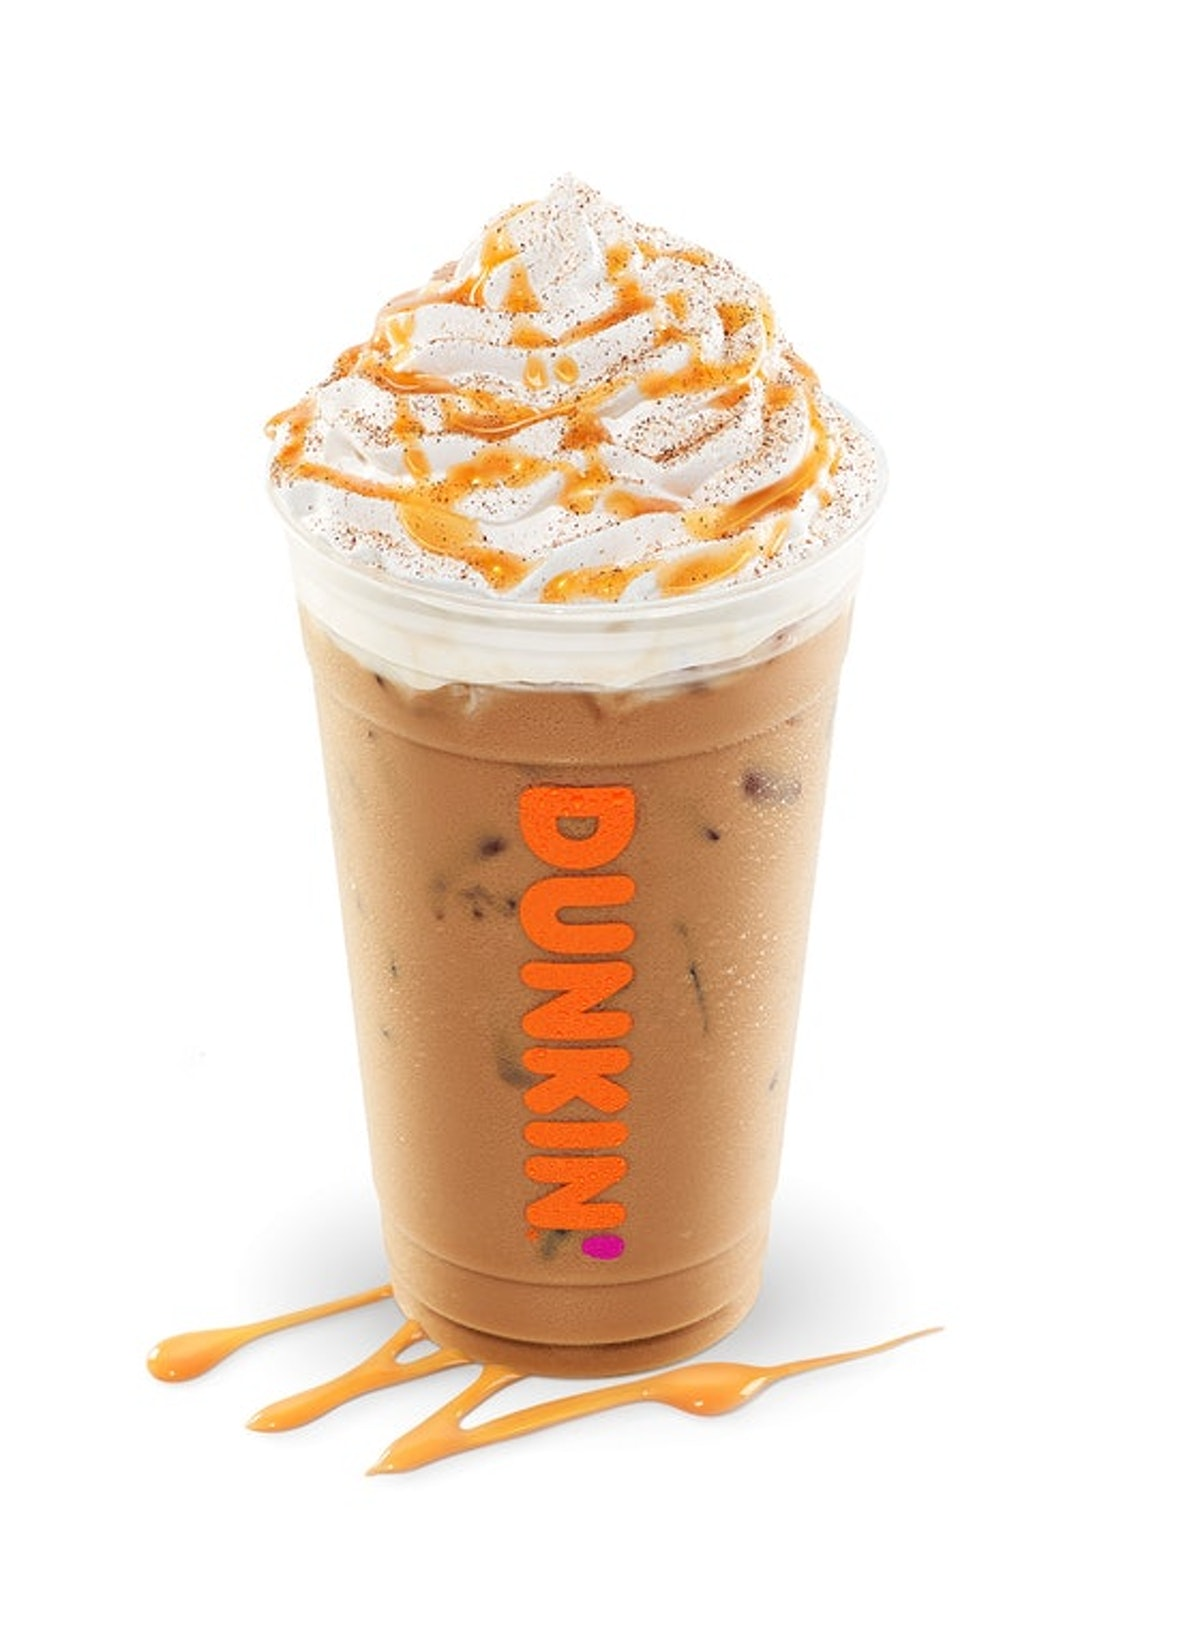 Here's what to know about if Dunkin's Pumpkin Spice Latte is vegan.